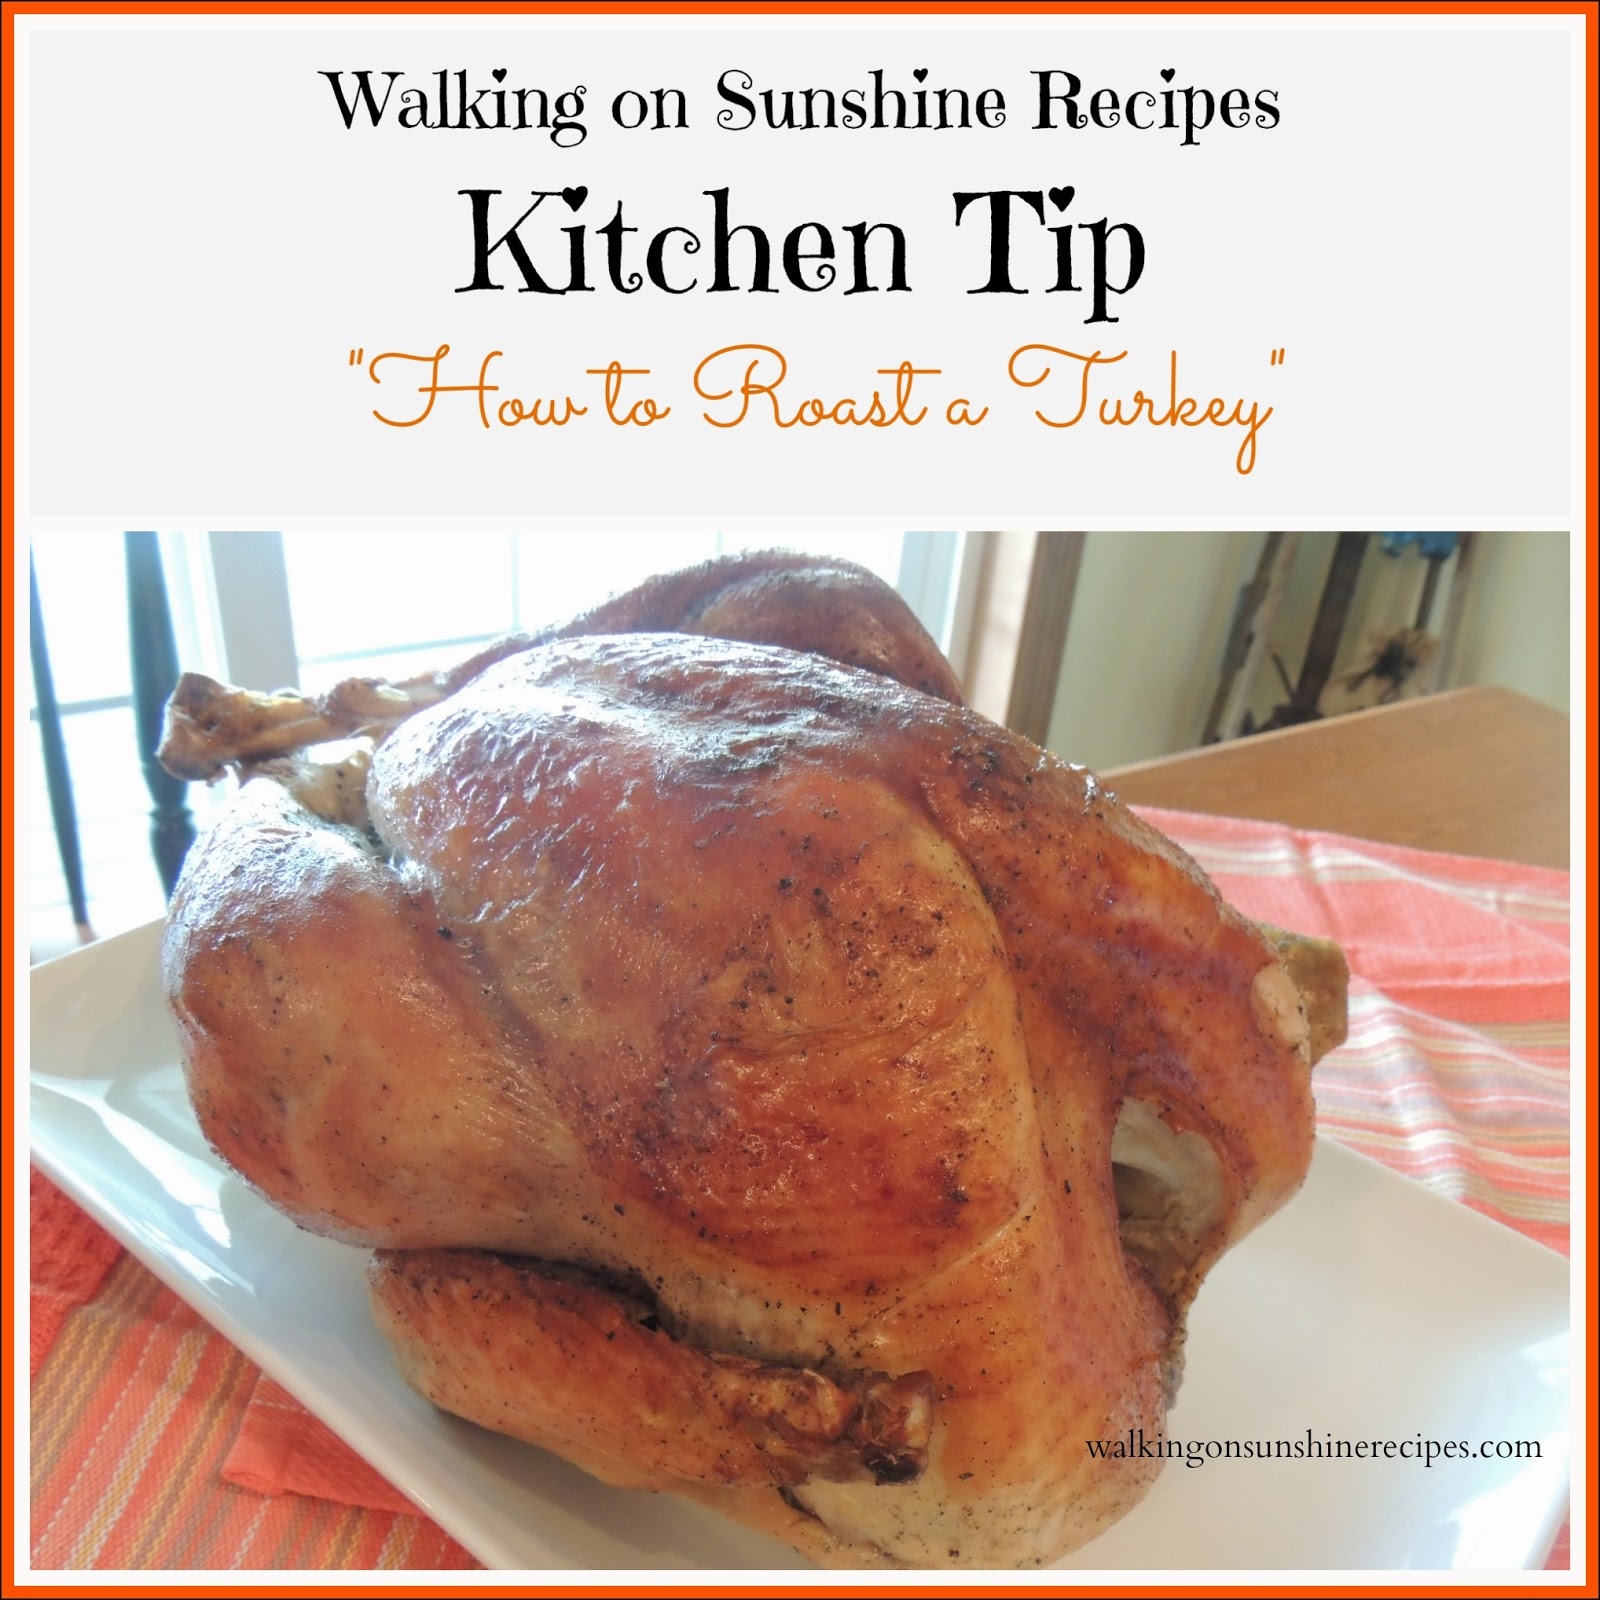 How to Roast a Turkey on Walking on Sunshine Recipes